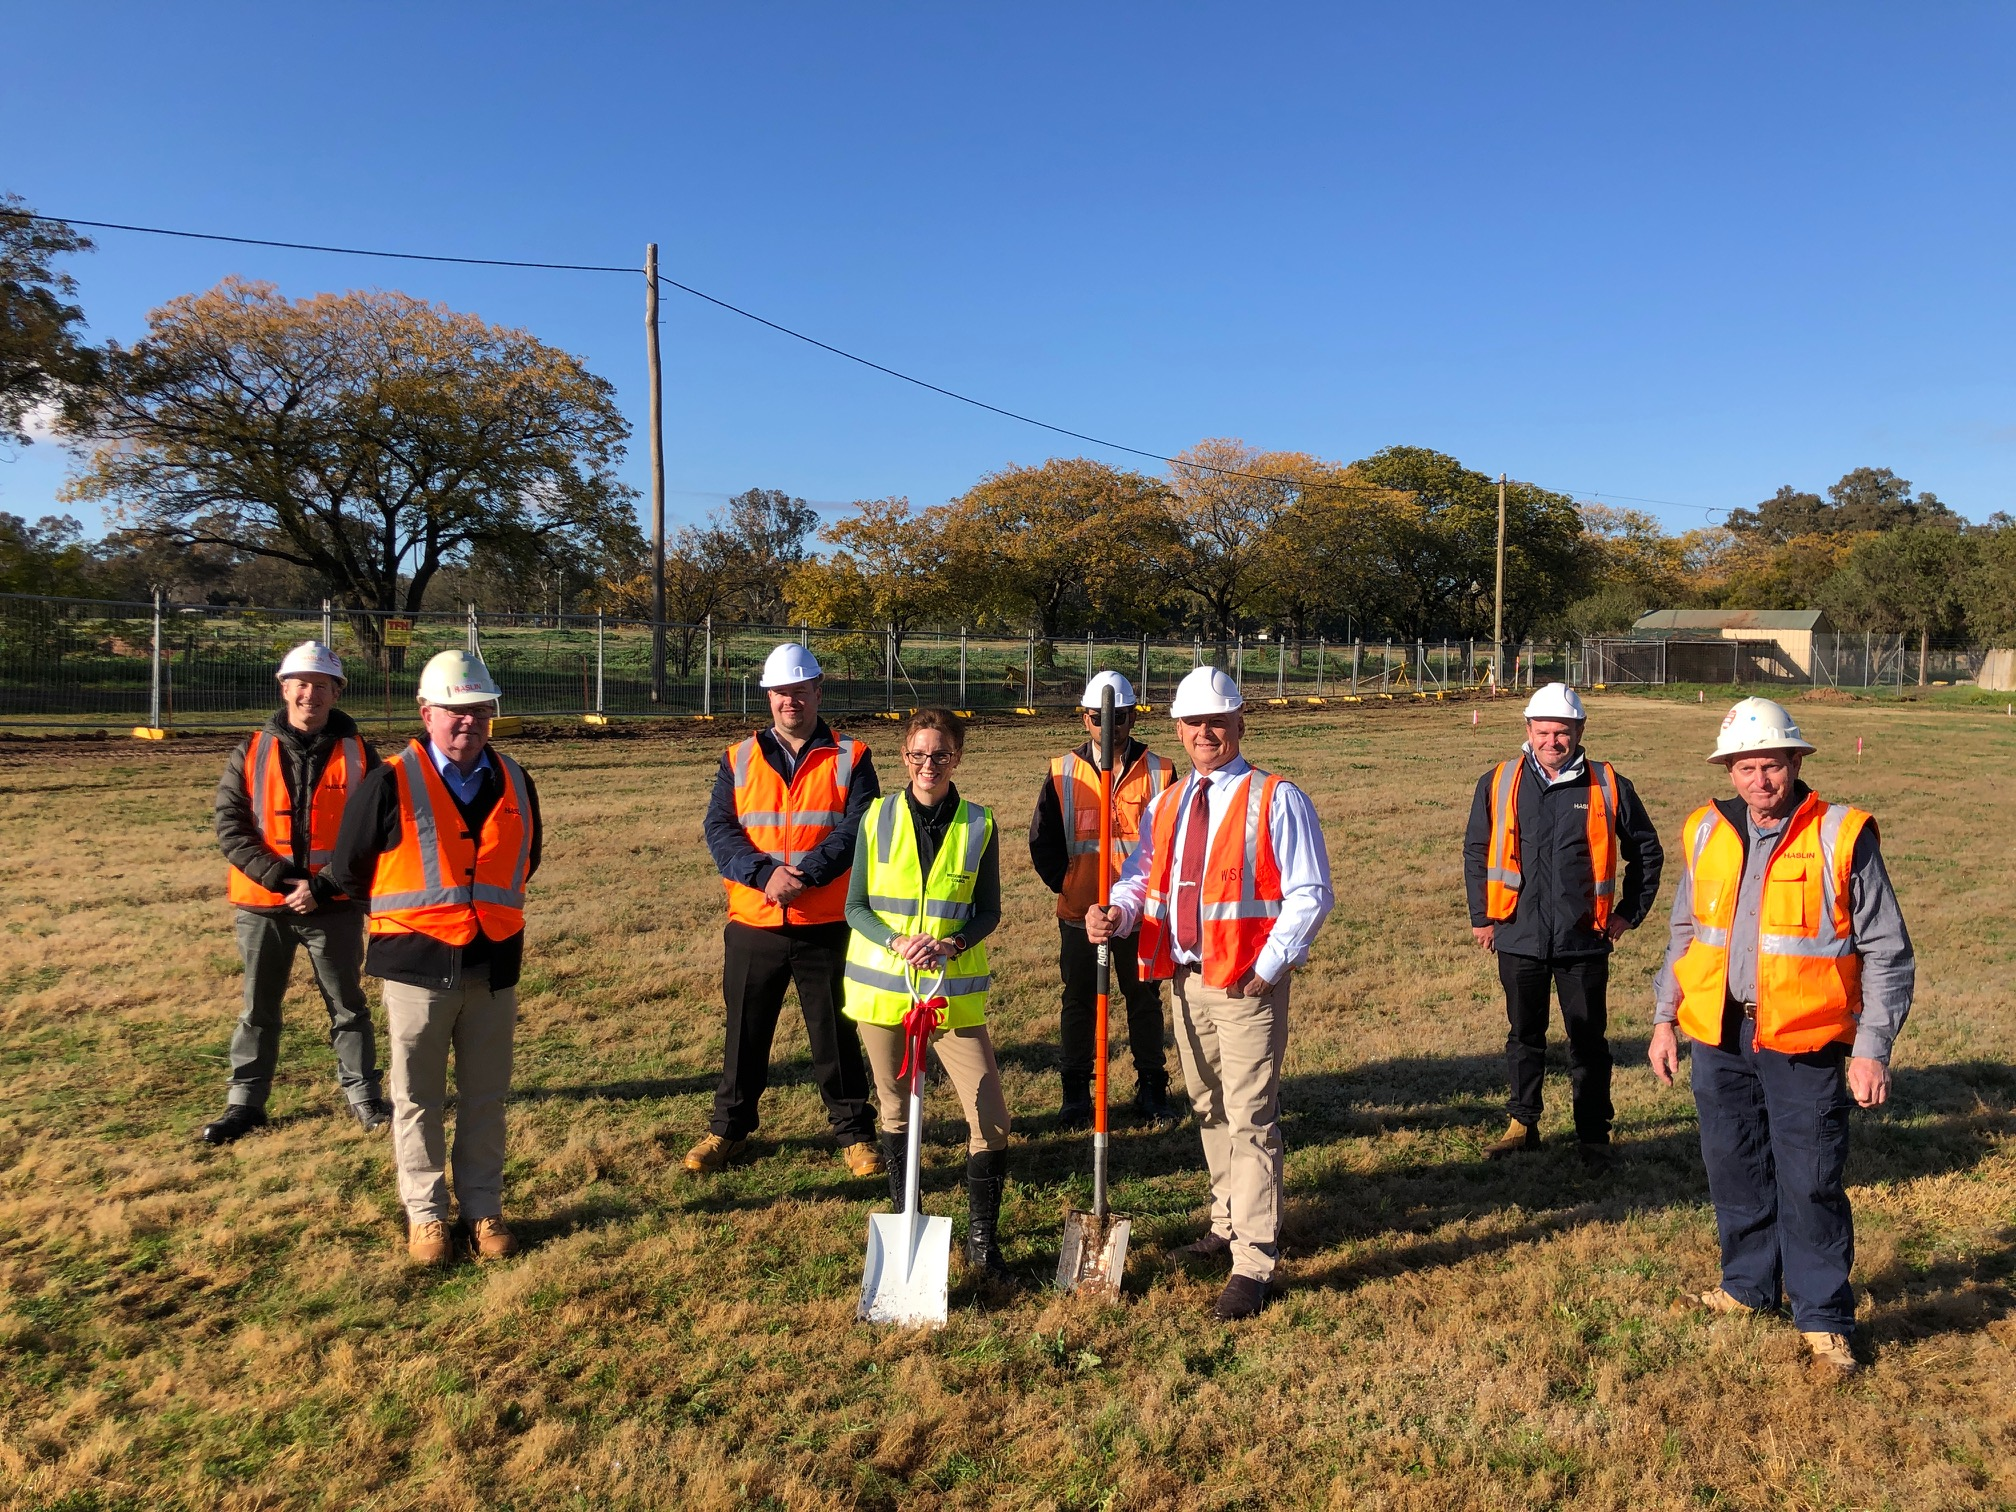 Steph Cooke stands with a group of men from the Weddin Shire Council and project contractor Haslin. Steph and the Mayor hold shovels. Everyone is wearing hi-vis vests.